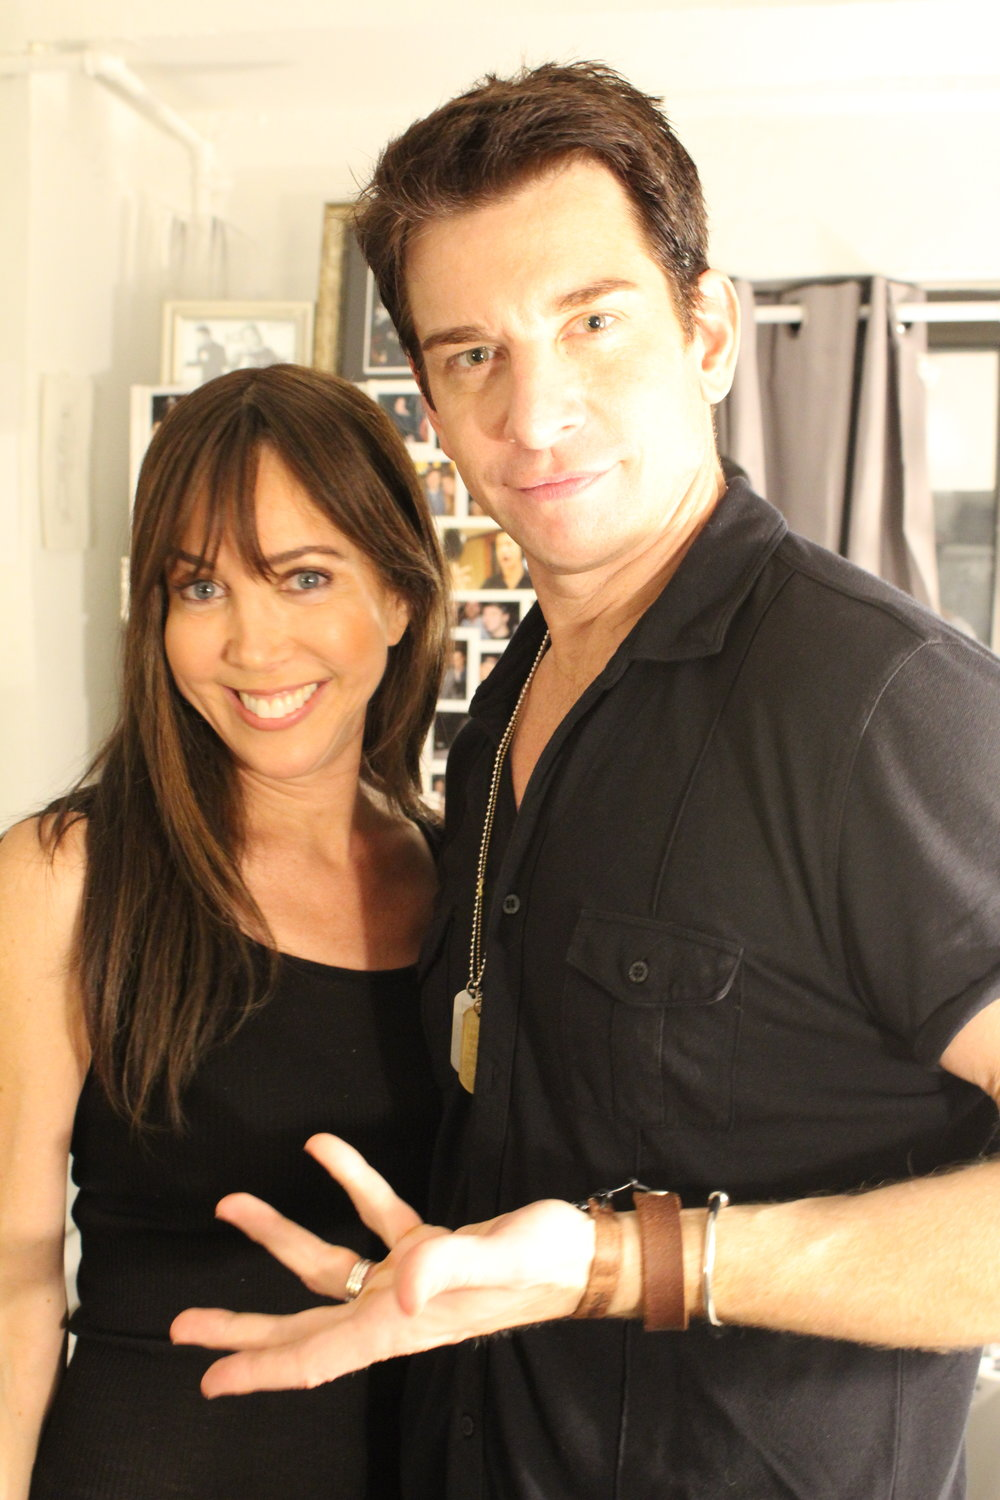 """Andy Karl, Olivier Award winning American stage, TV, and film actor backstage with Rachel after starring in Broadway show """"Groundhog Day"""""""